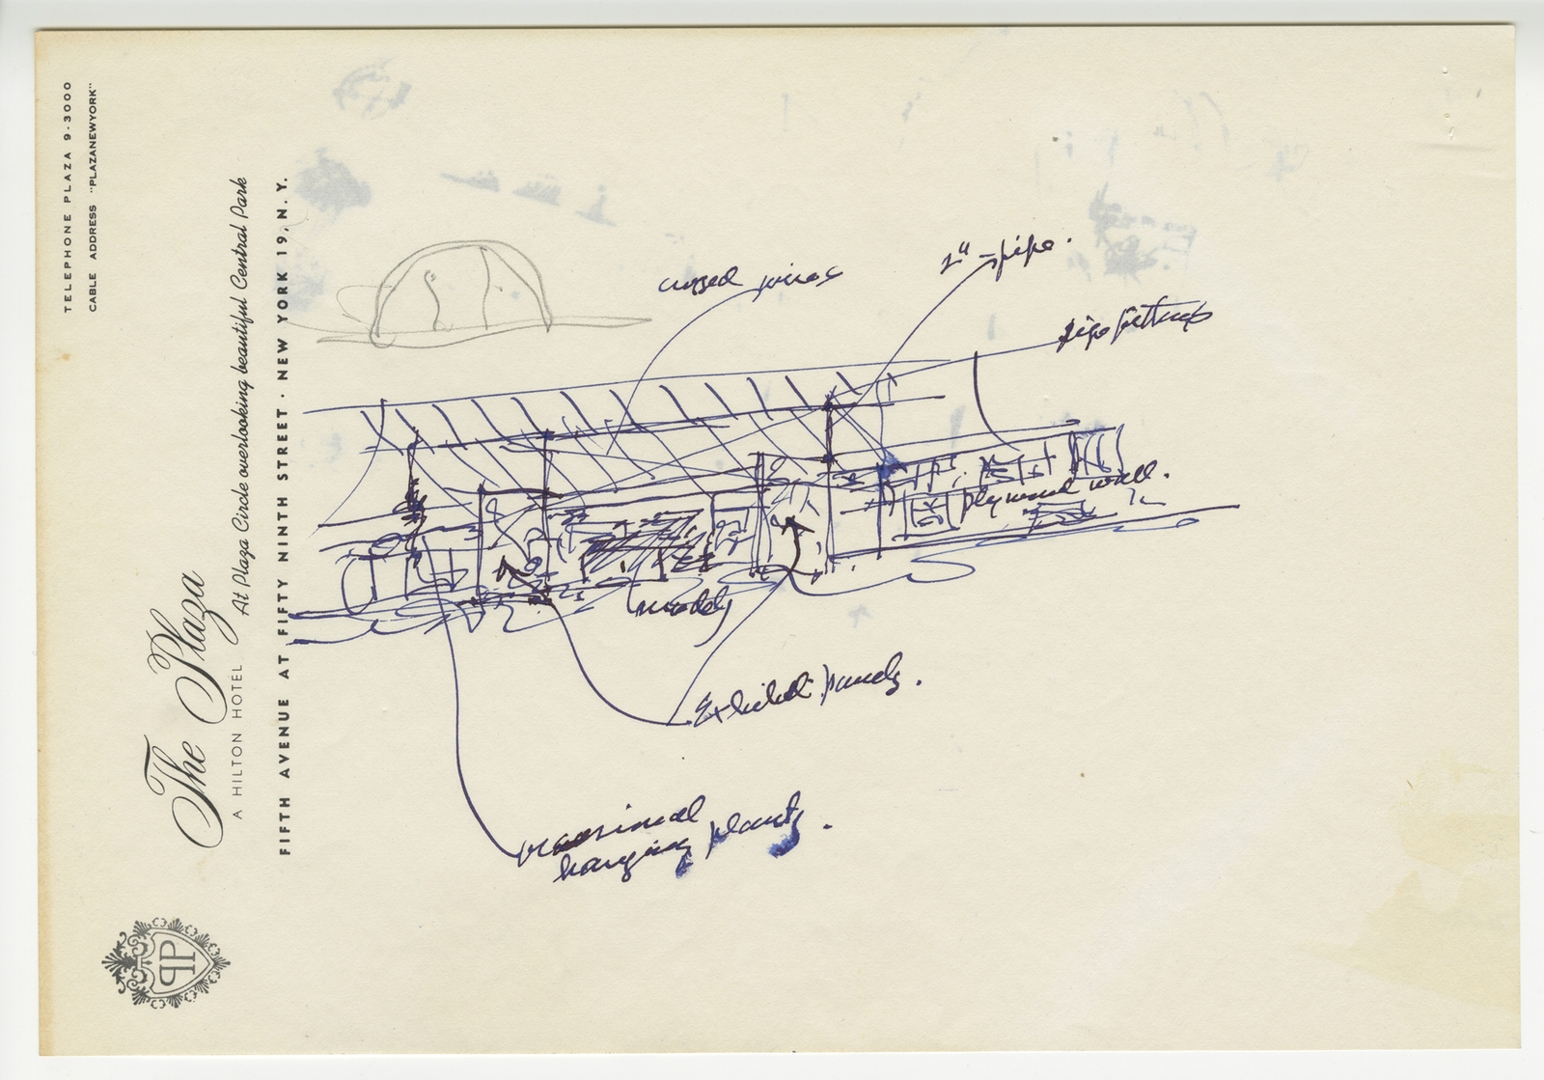 Sketch by Frank Lloyd Wright sent to James Johnson Sweeney, illustrating the pavilion and Usonian house image